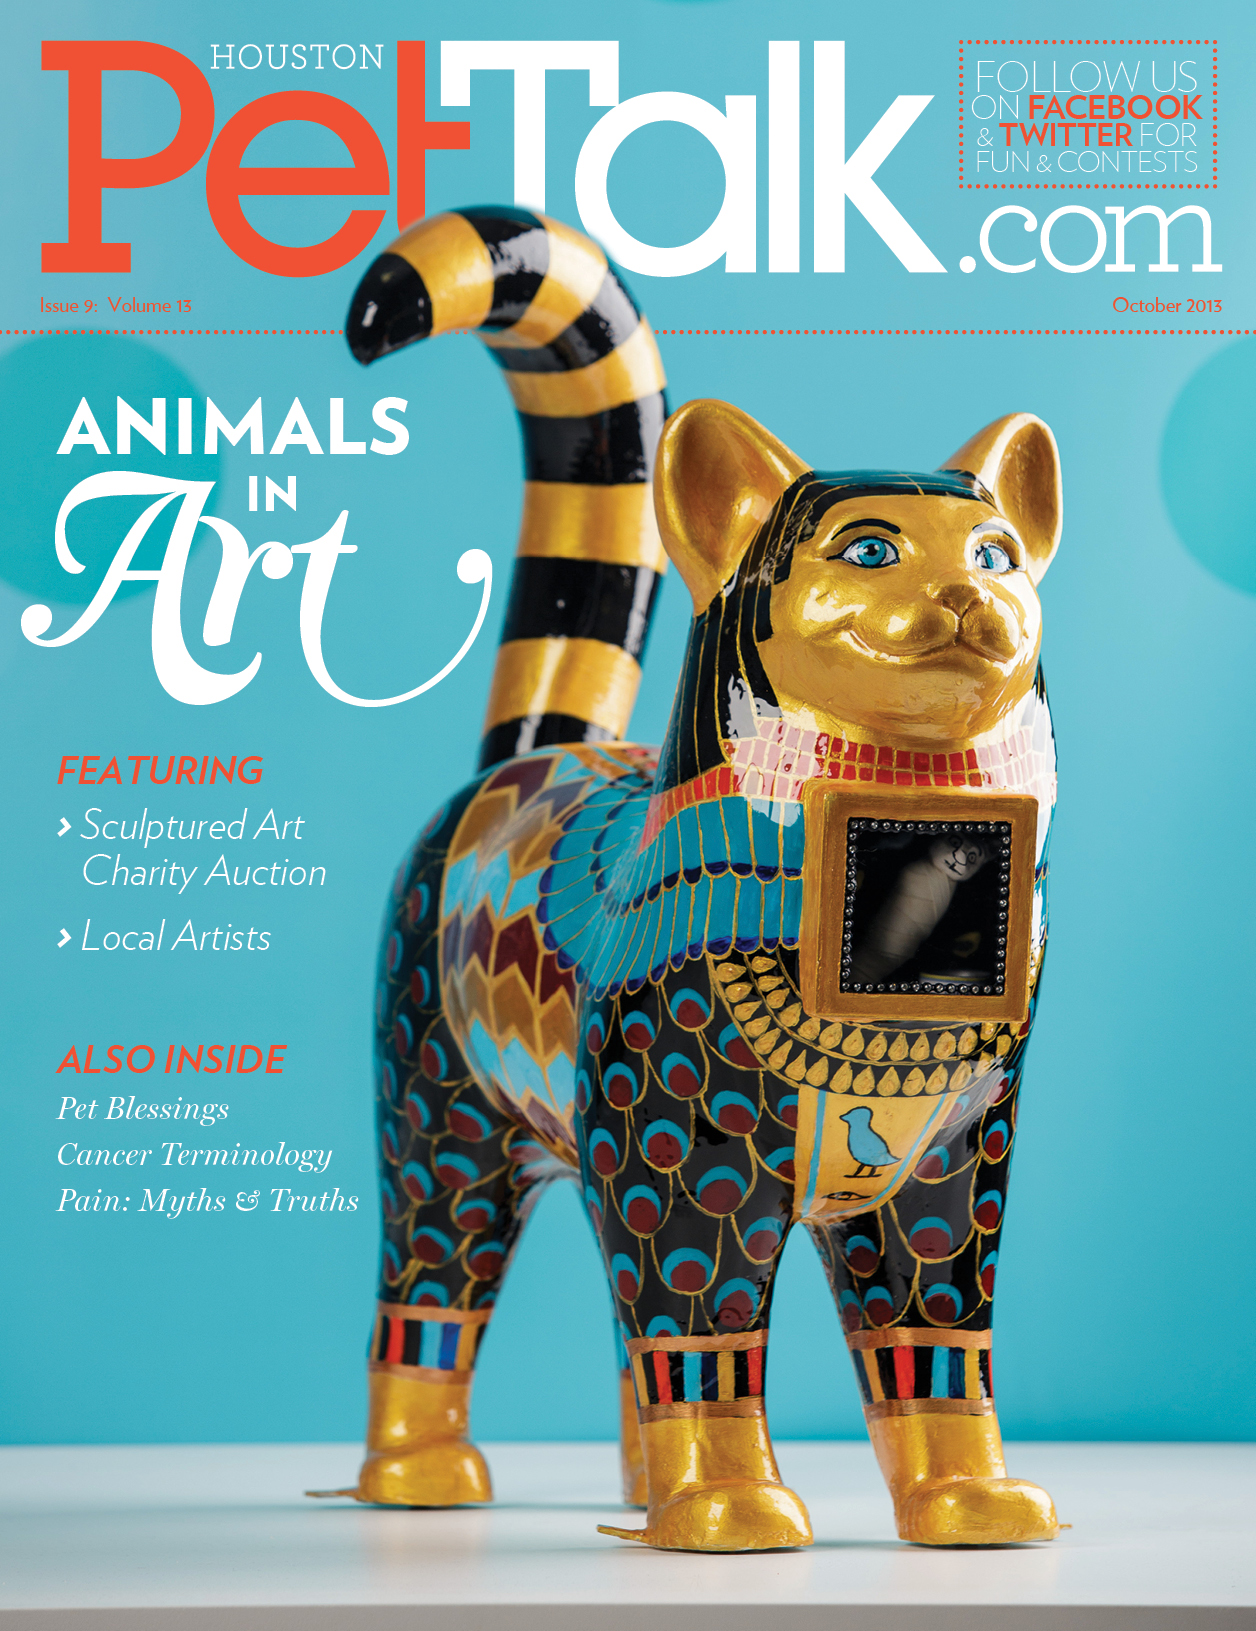 October 2013 Digital Issue of Houston PetTalk